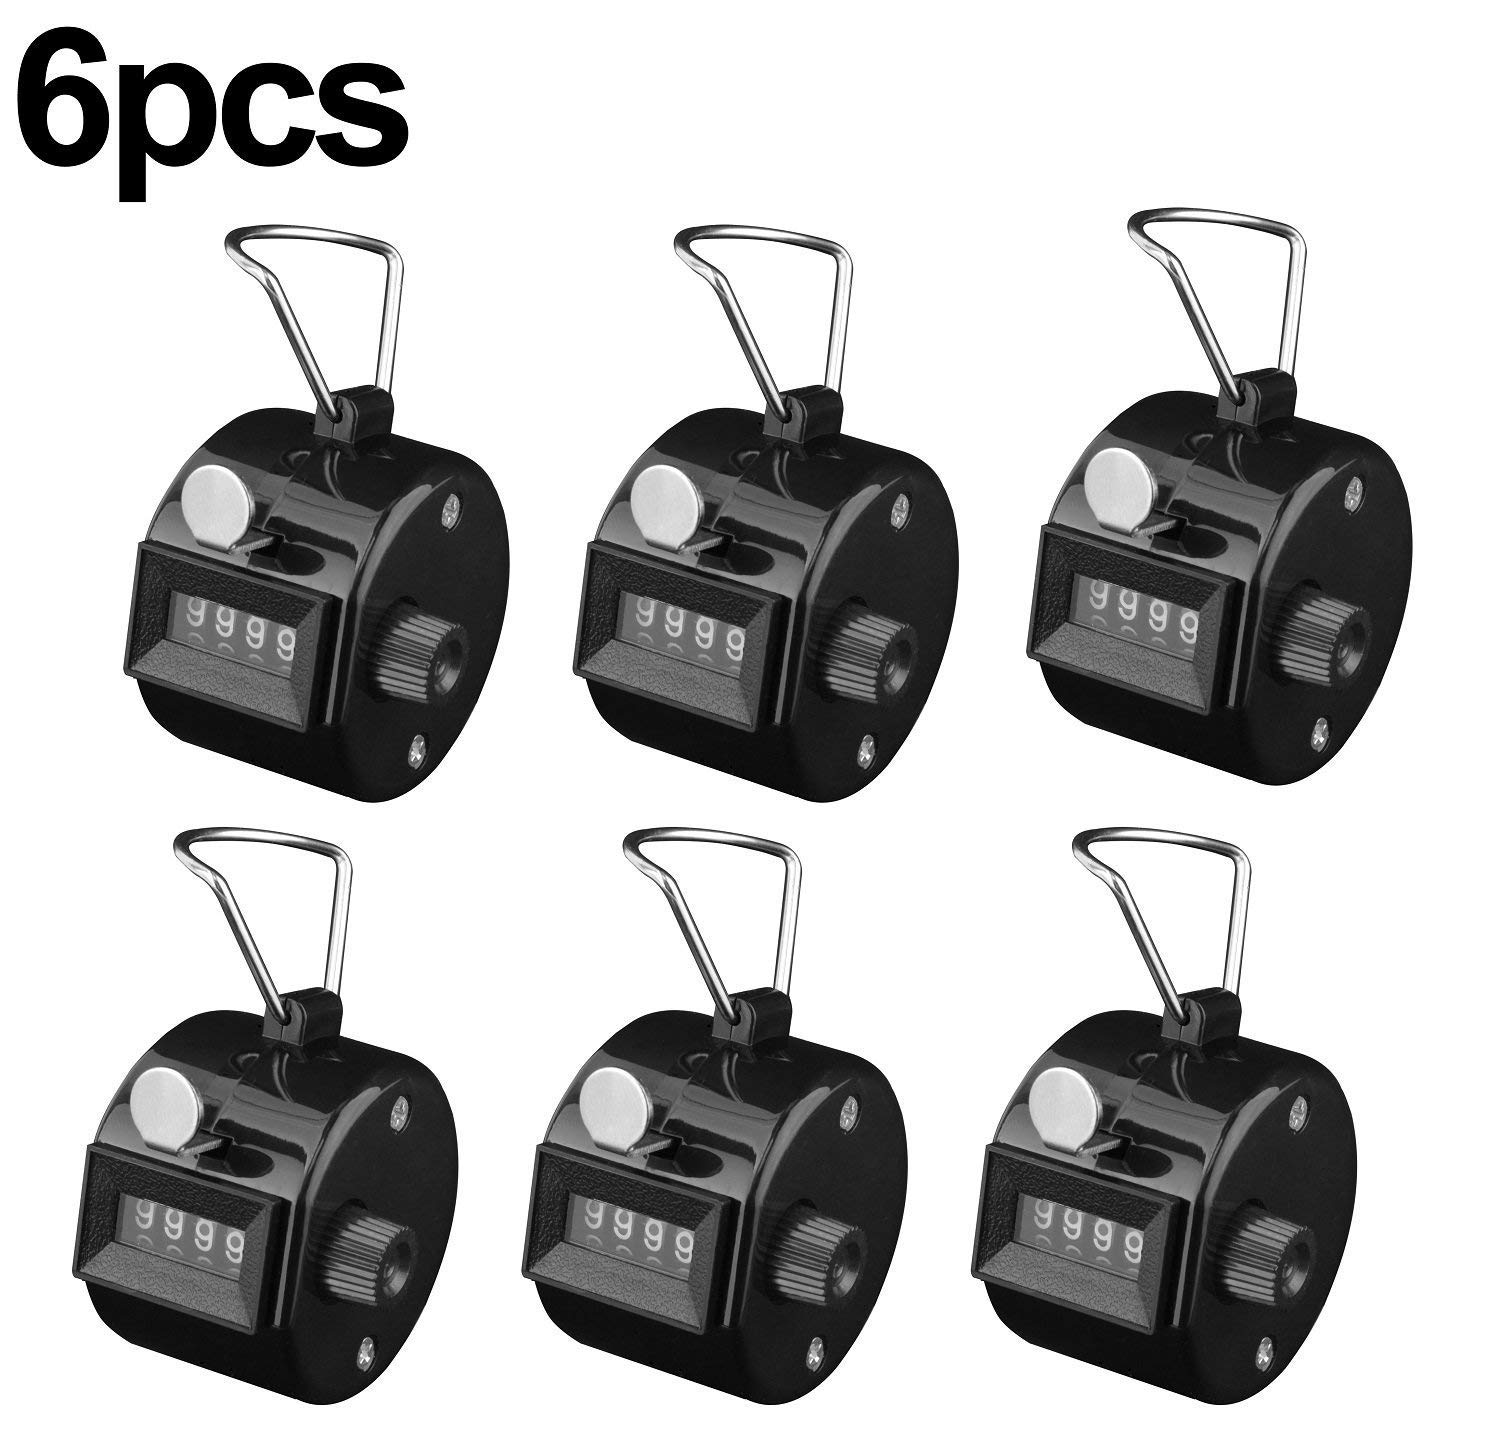 Maogear Pack of 6 Black Hand Tally Counter 4 Digit Tally Counter Mechanical Palm Click Counter Count Clicker Assorted Color Hand Held Counter Clicker for Sport Stadium Coach Casino and Other Event (6 pack)